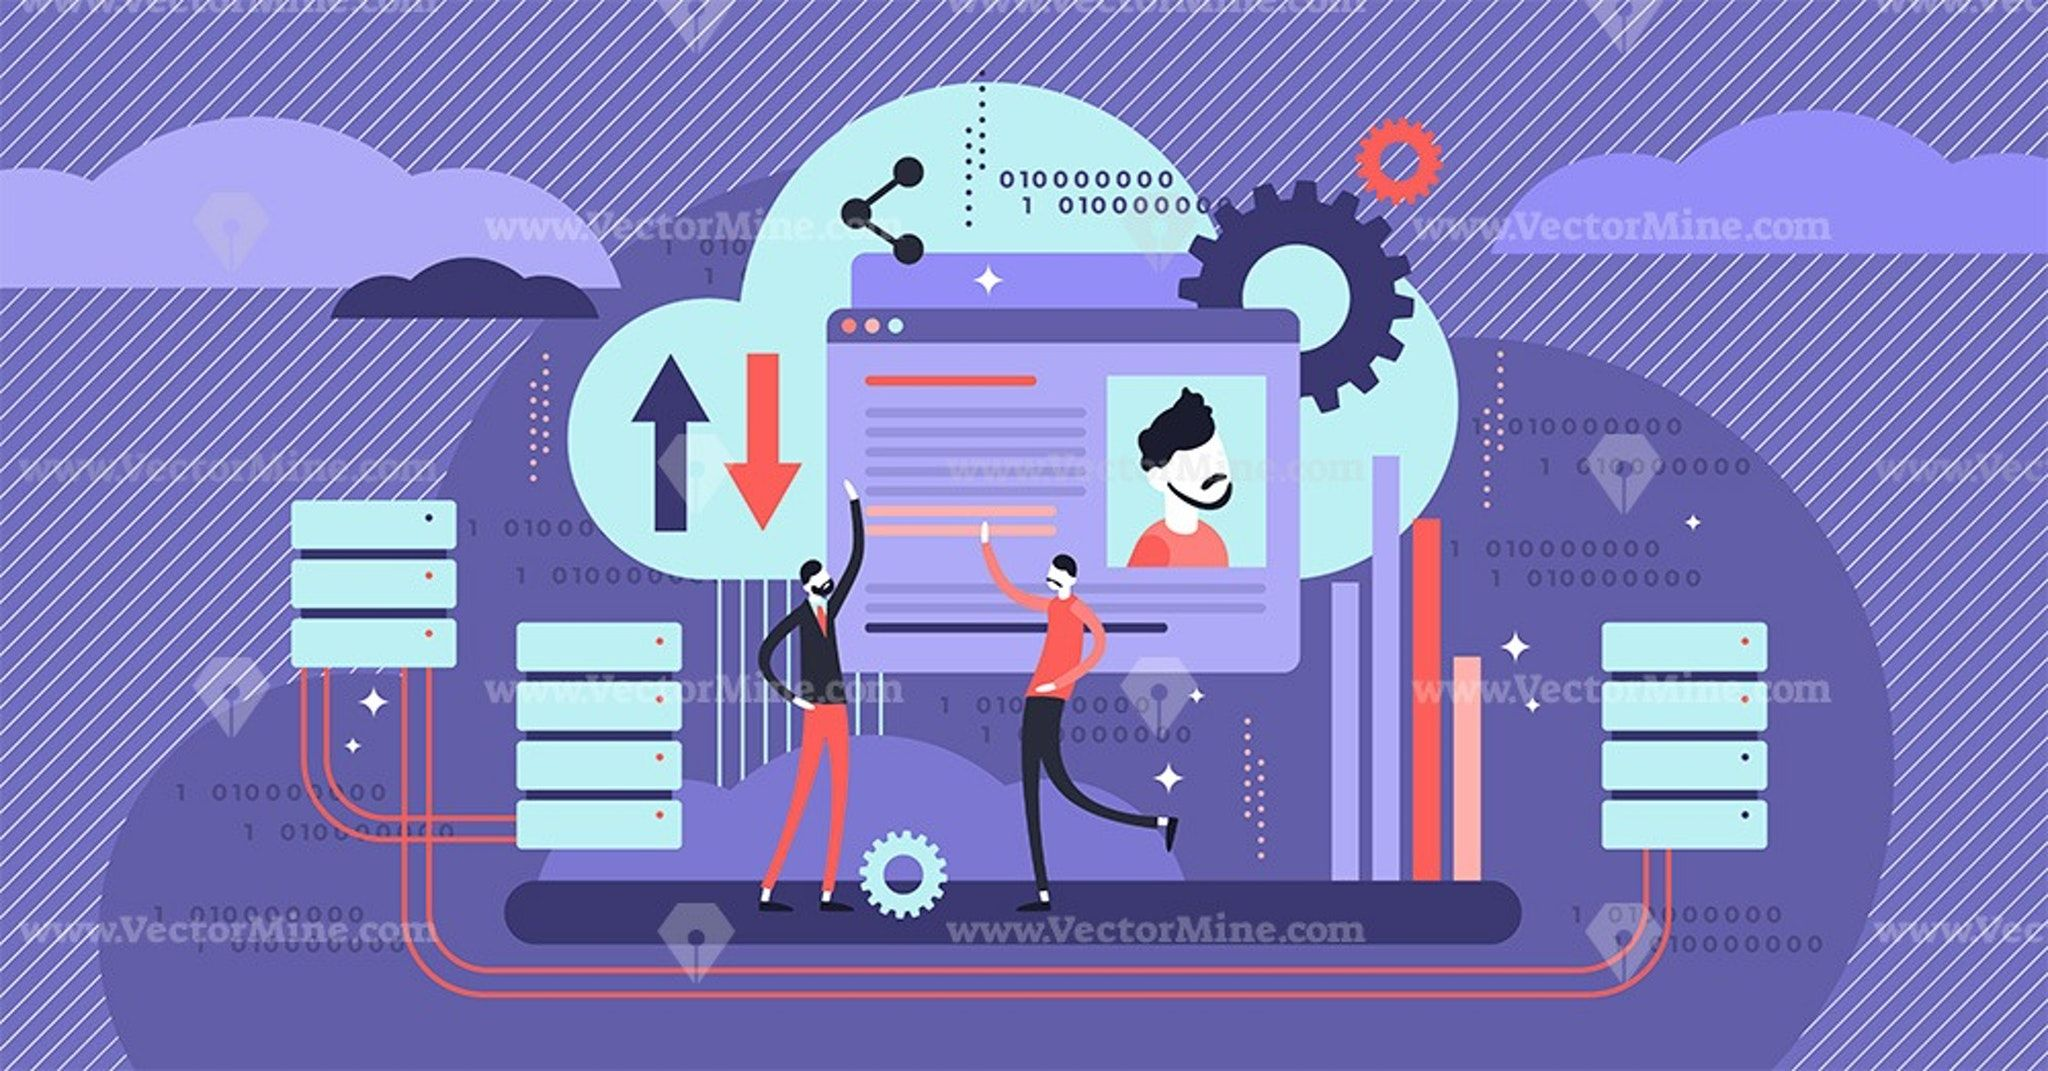 Database concept vector illustration (With images